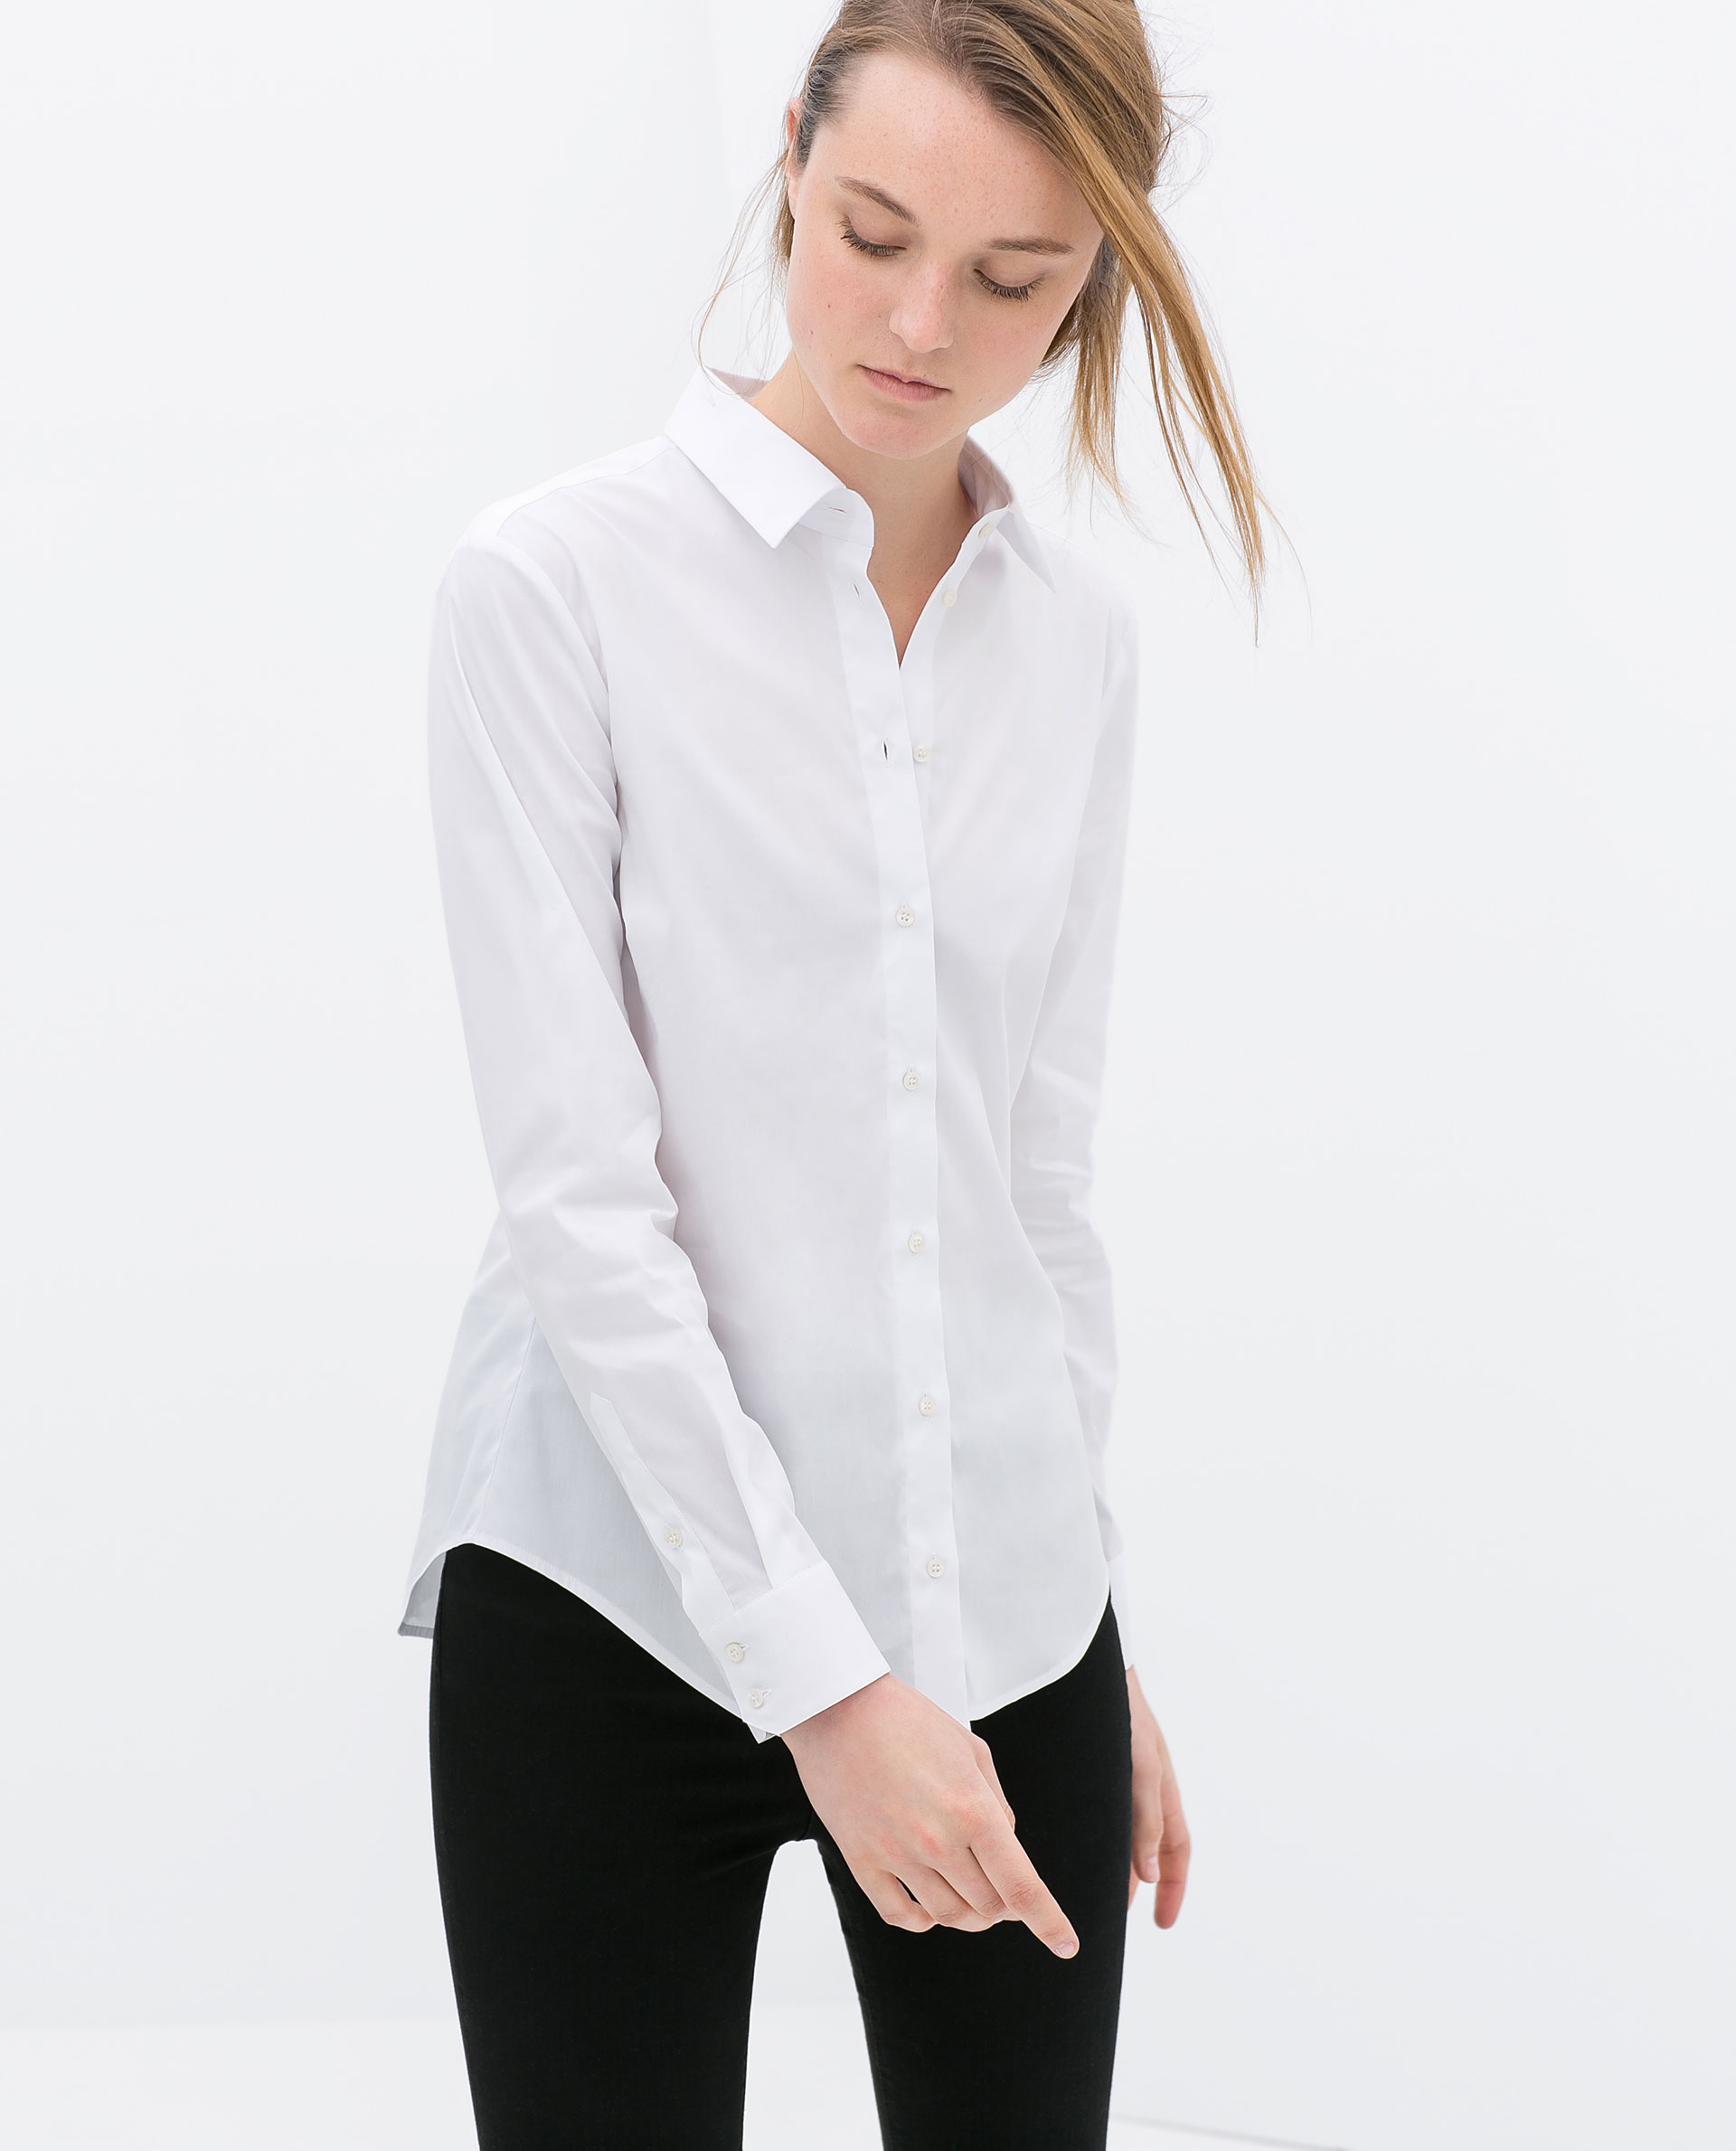 ZARA's clothing for women is chic and flattering for women of all body types. ZARA women tops and blouses are available in a lot of different sizes, fabrics and styles to appeal to a large variety of women.